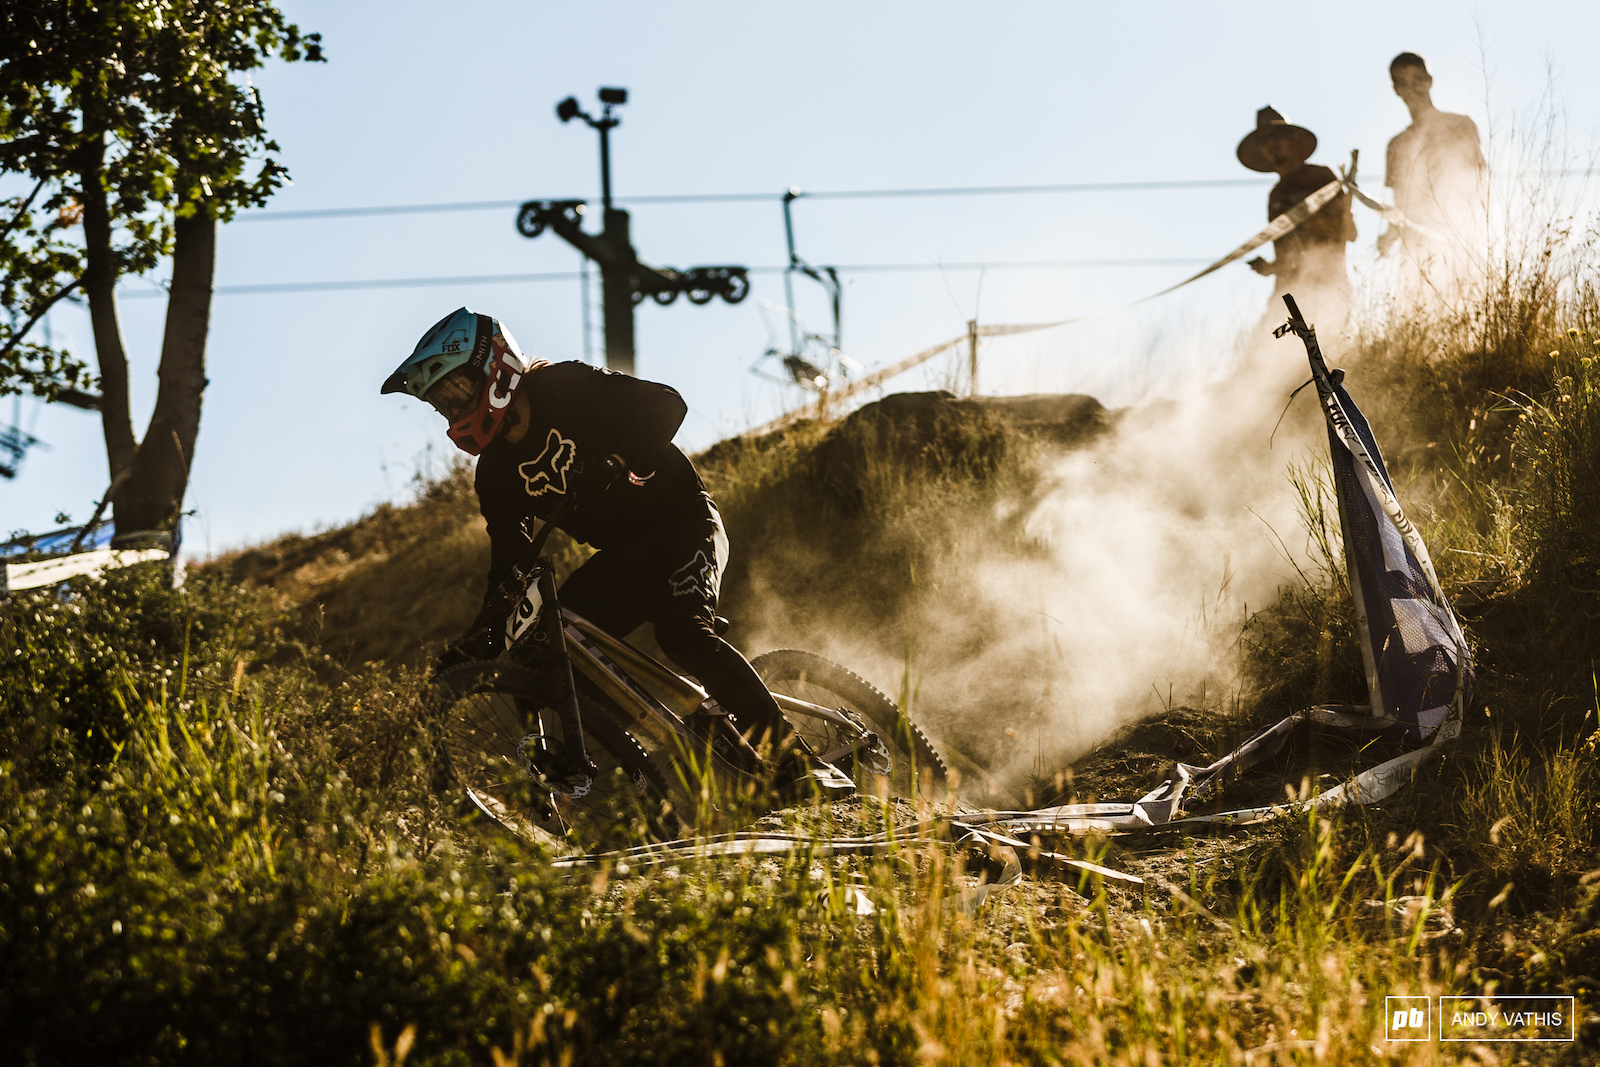 Brett Rheeder trying his hand at downhill racing. His biggest adjustment was a bike setup with actual suspension sag.